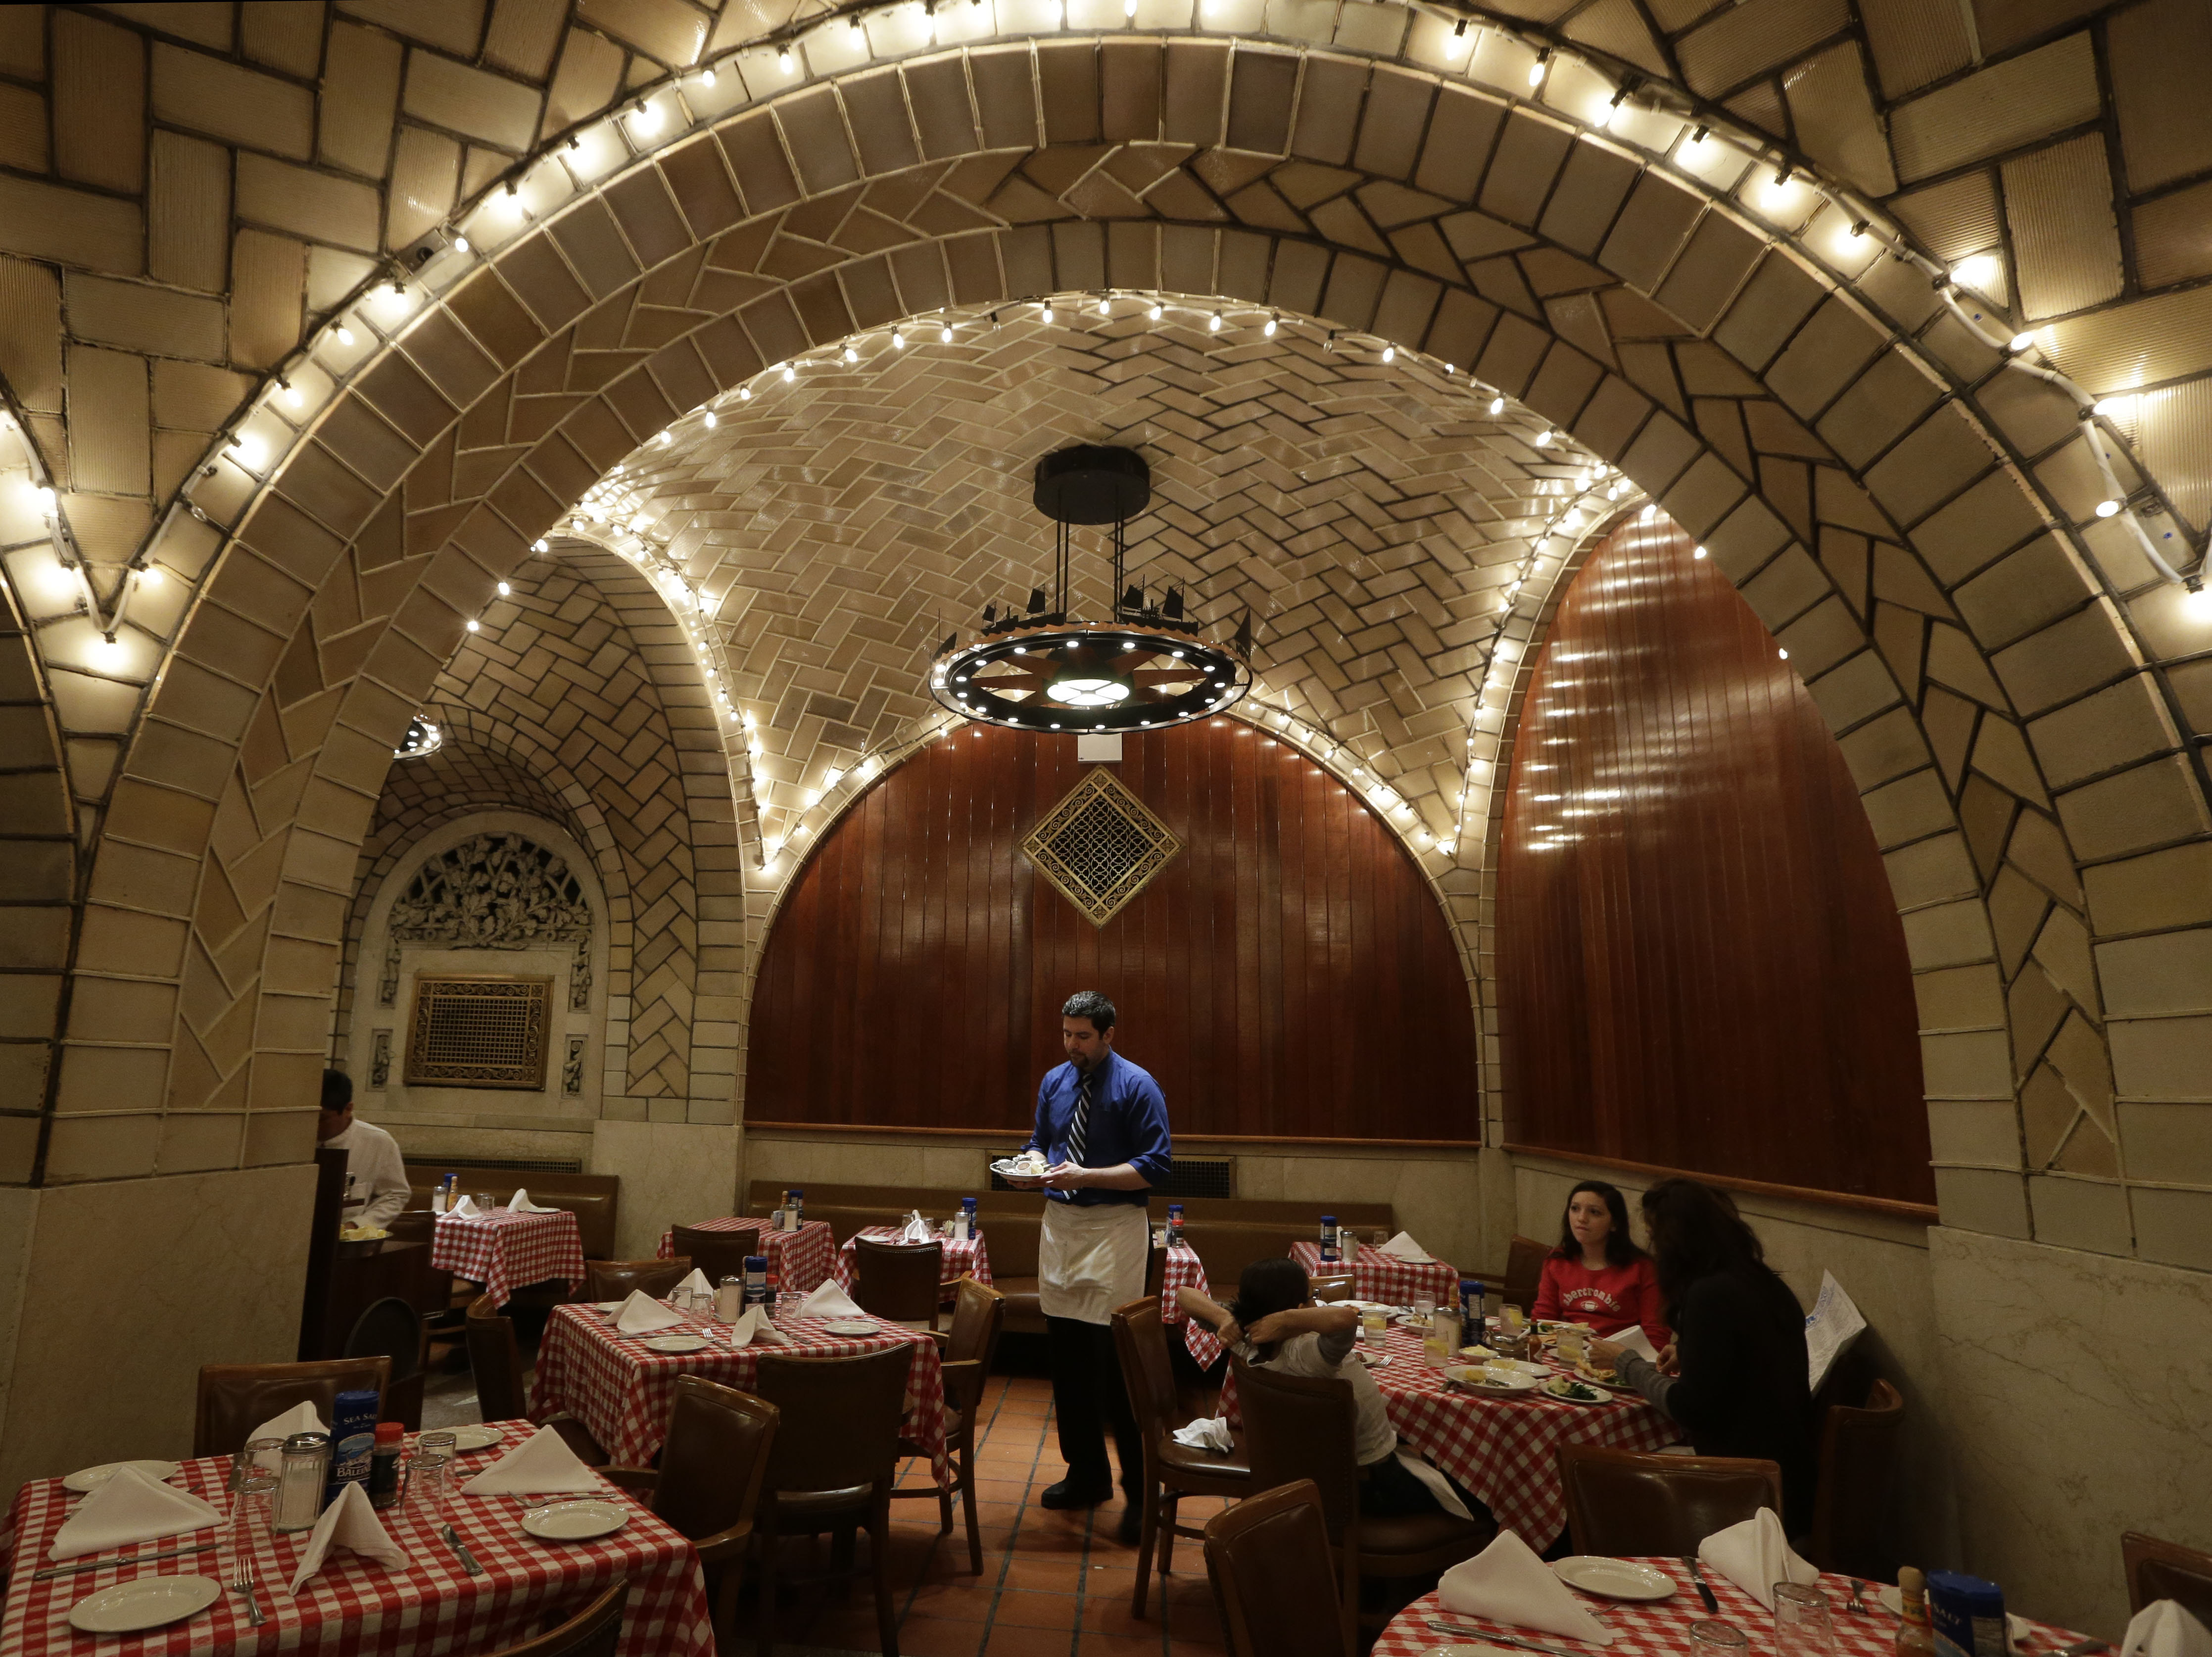 Grand Central's oldest tenant, the Oyster Bar, opened before the terminal was even completed.